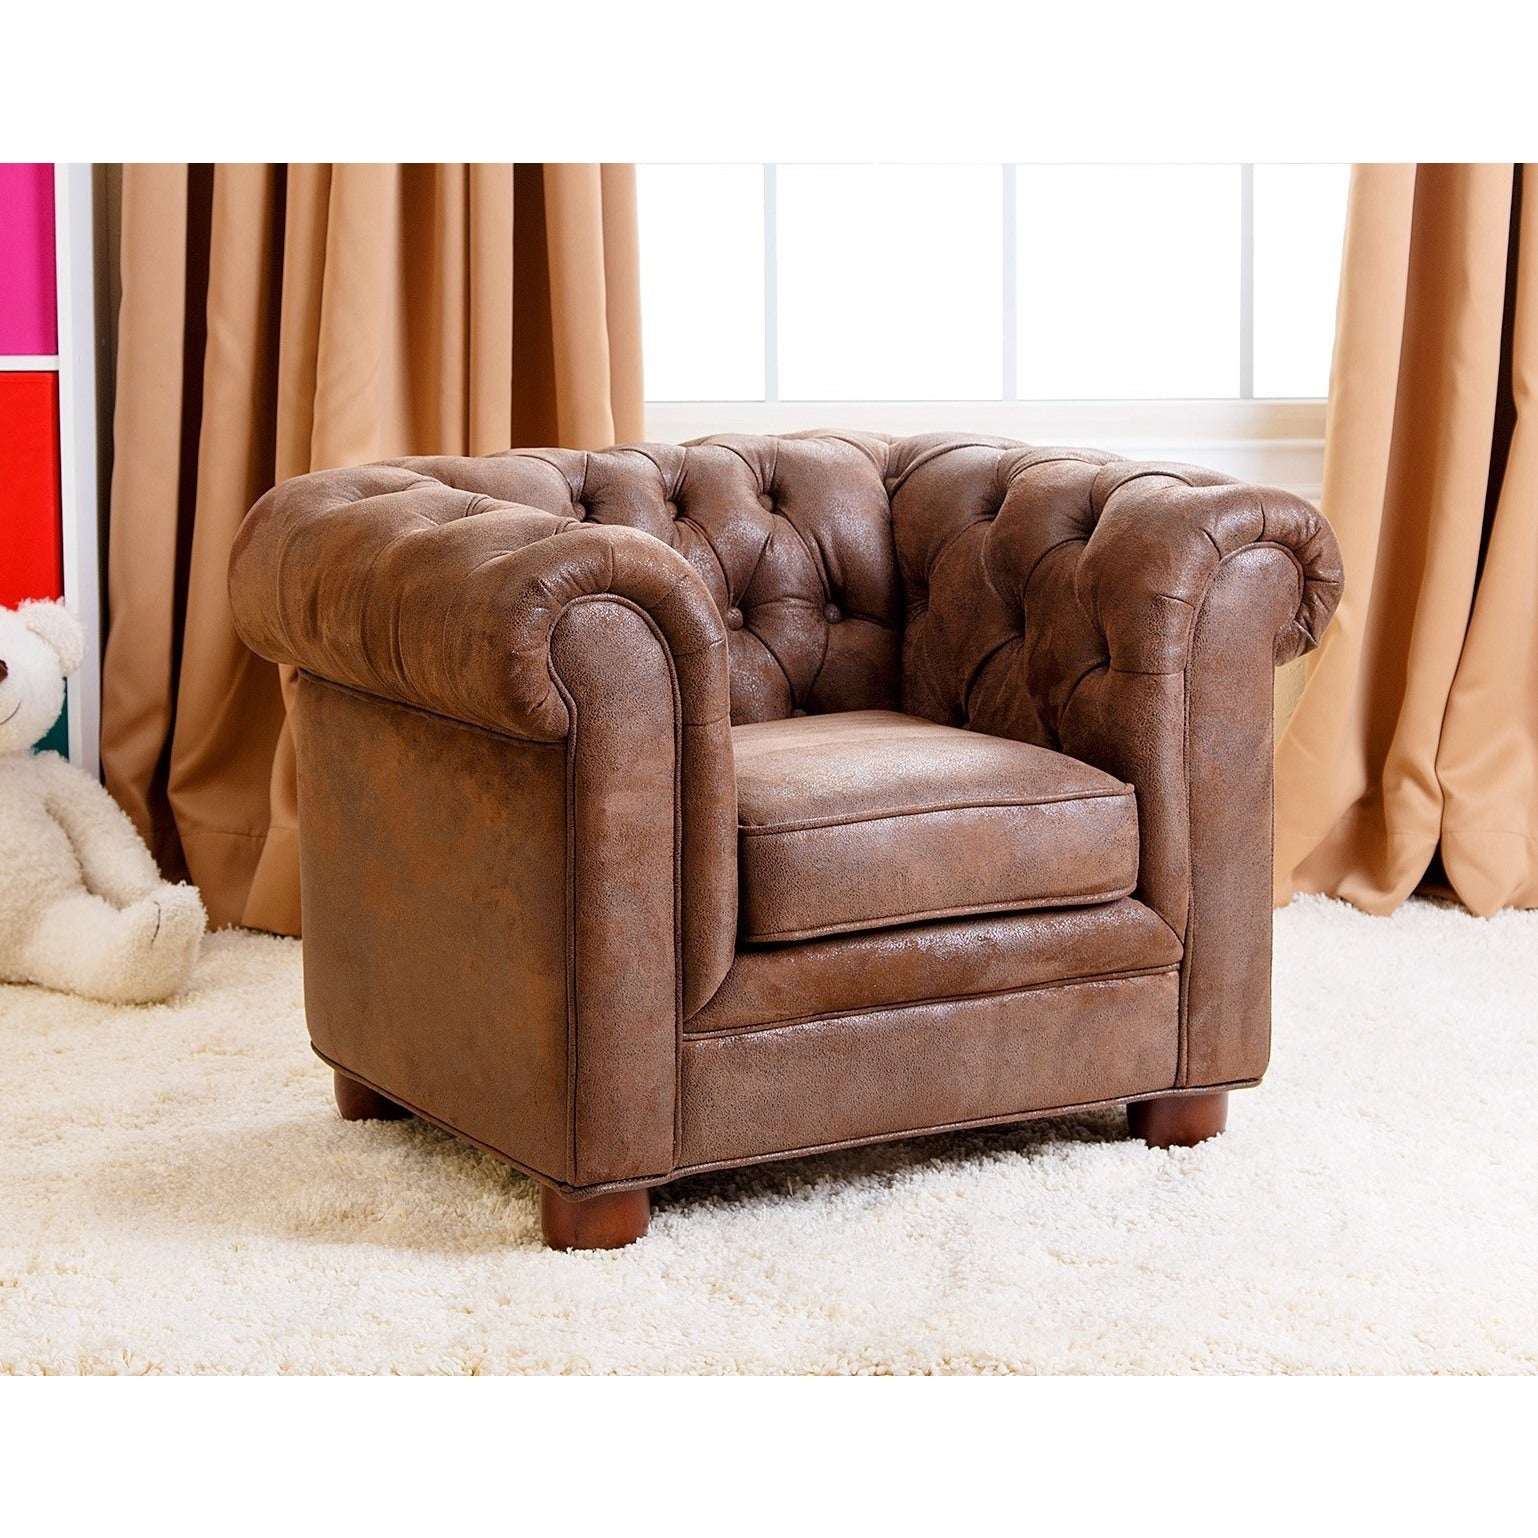 Shop Abbyson Kids Antique Brown Velvet Chesterfield RJ Mini Chair - On Sale  - Free Shipping Today - Overstock.com - 10562560 - Shop Abbyson Kids Antique Brown Velvet Chesterfield RJ Mini Chair